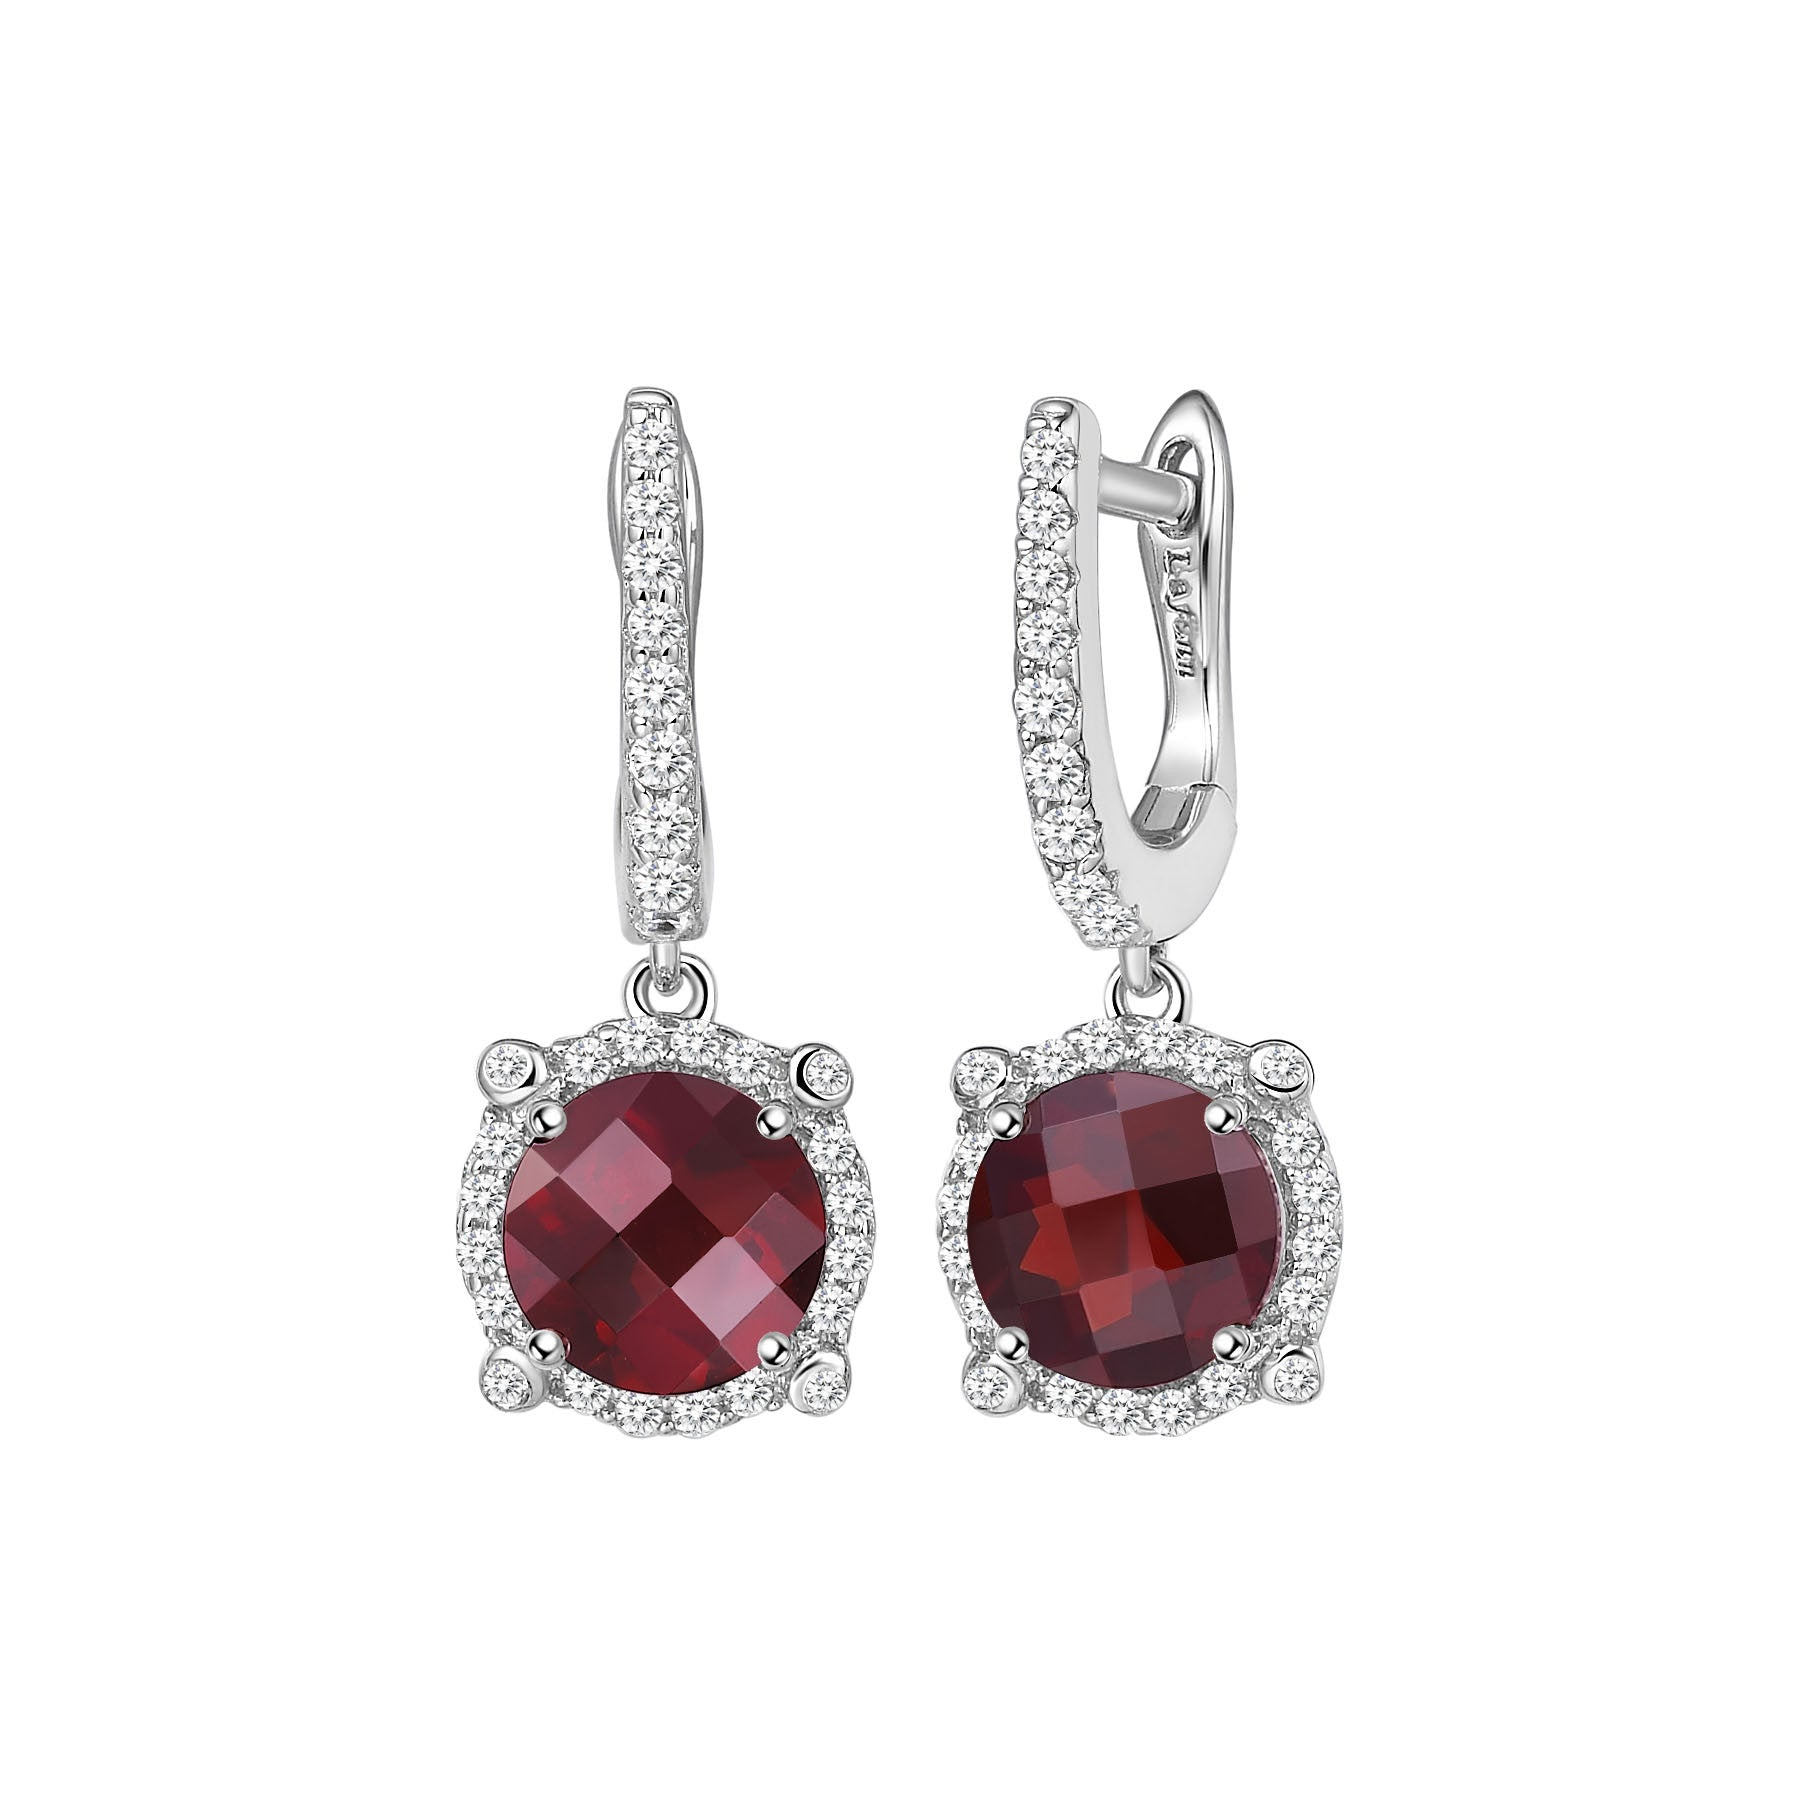 Sterling Silver and Platinum Mozambique Garnet Earrings by Lafonn